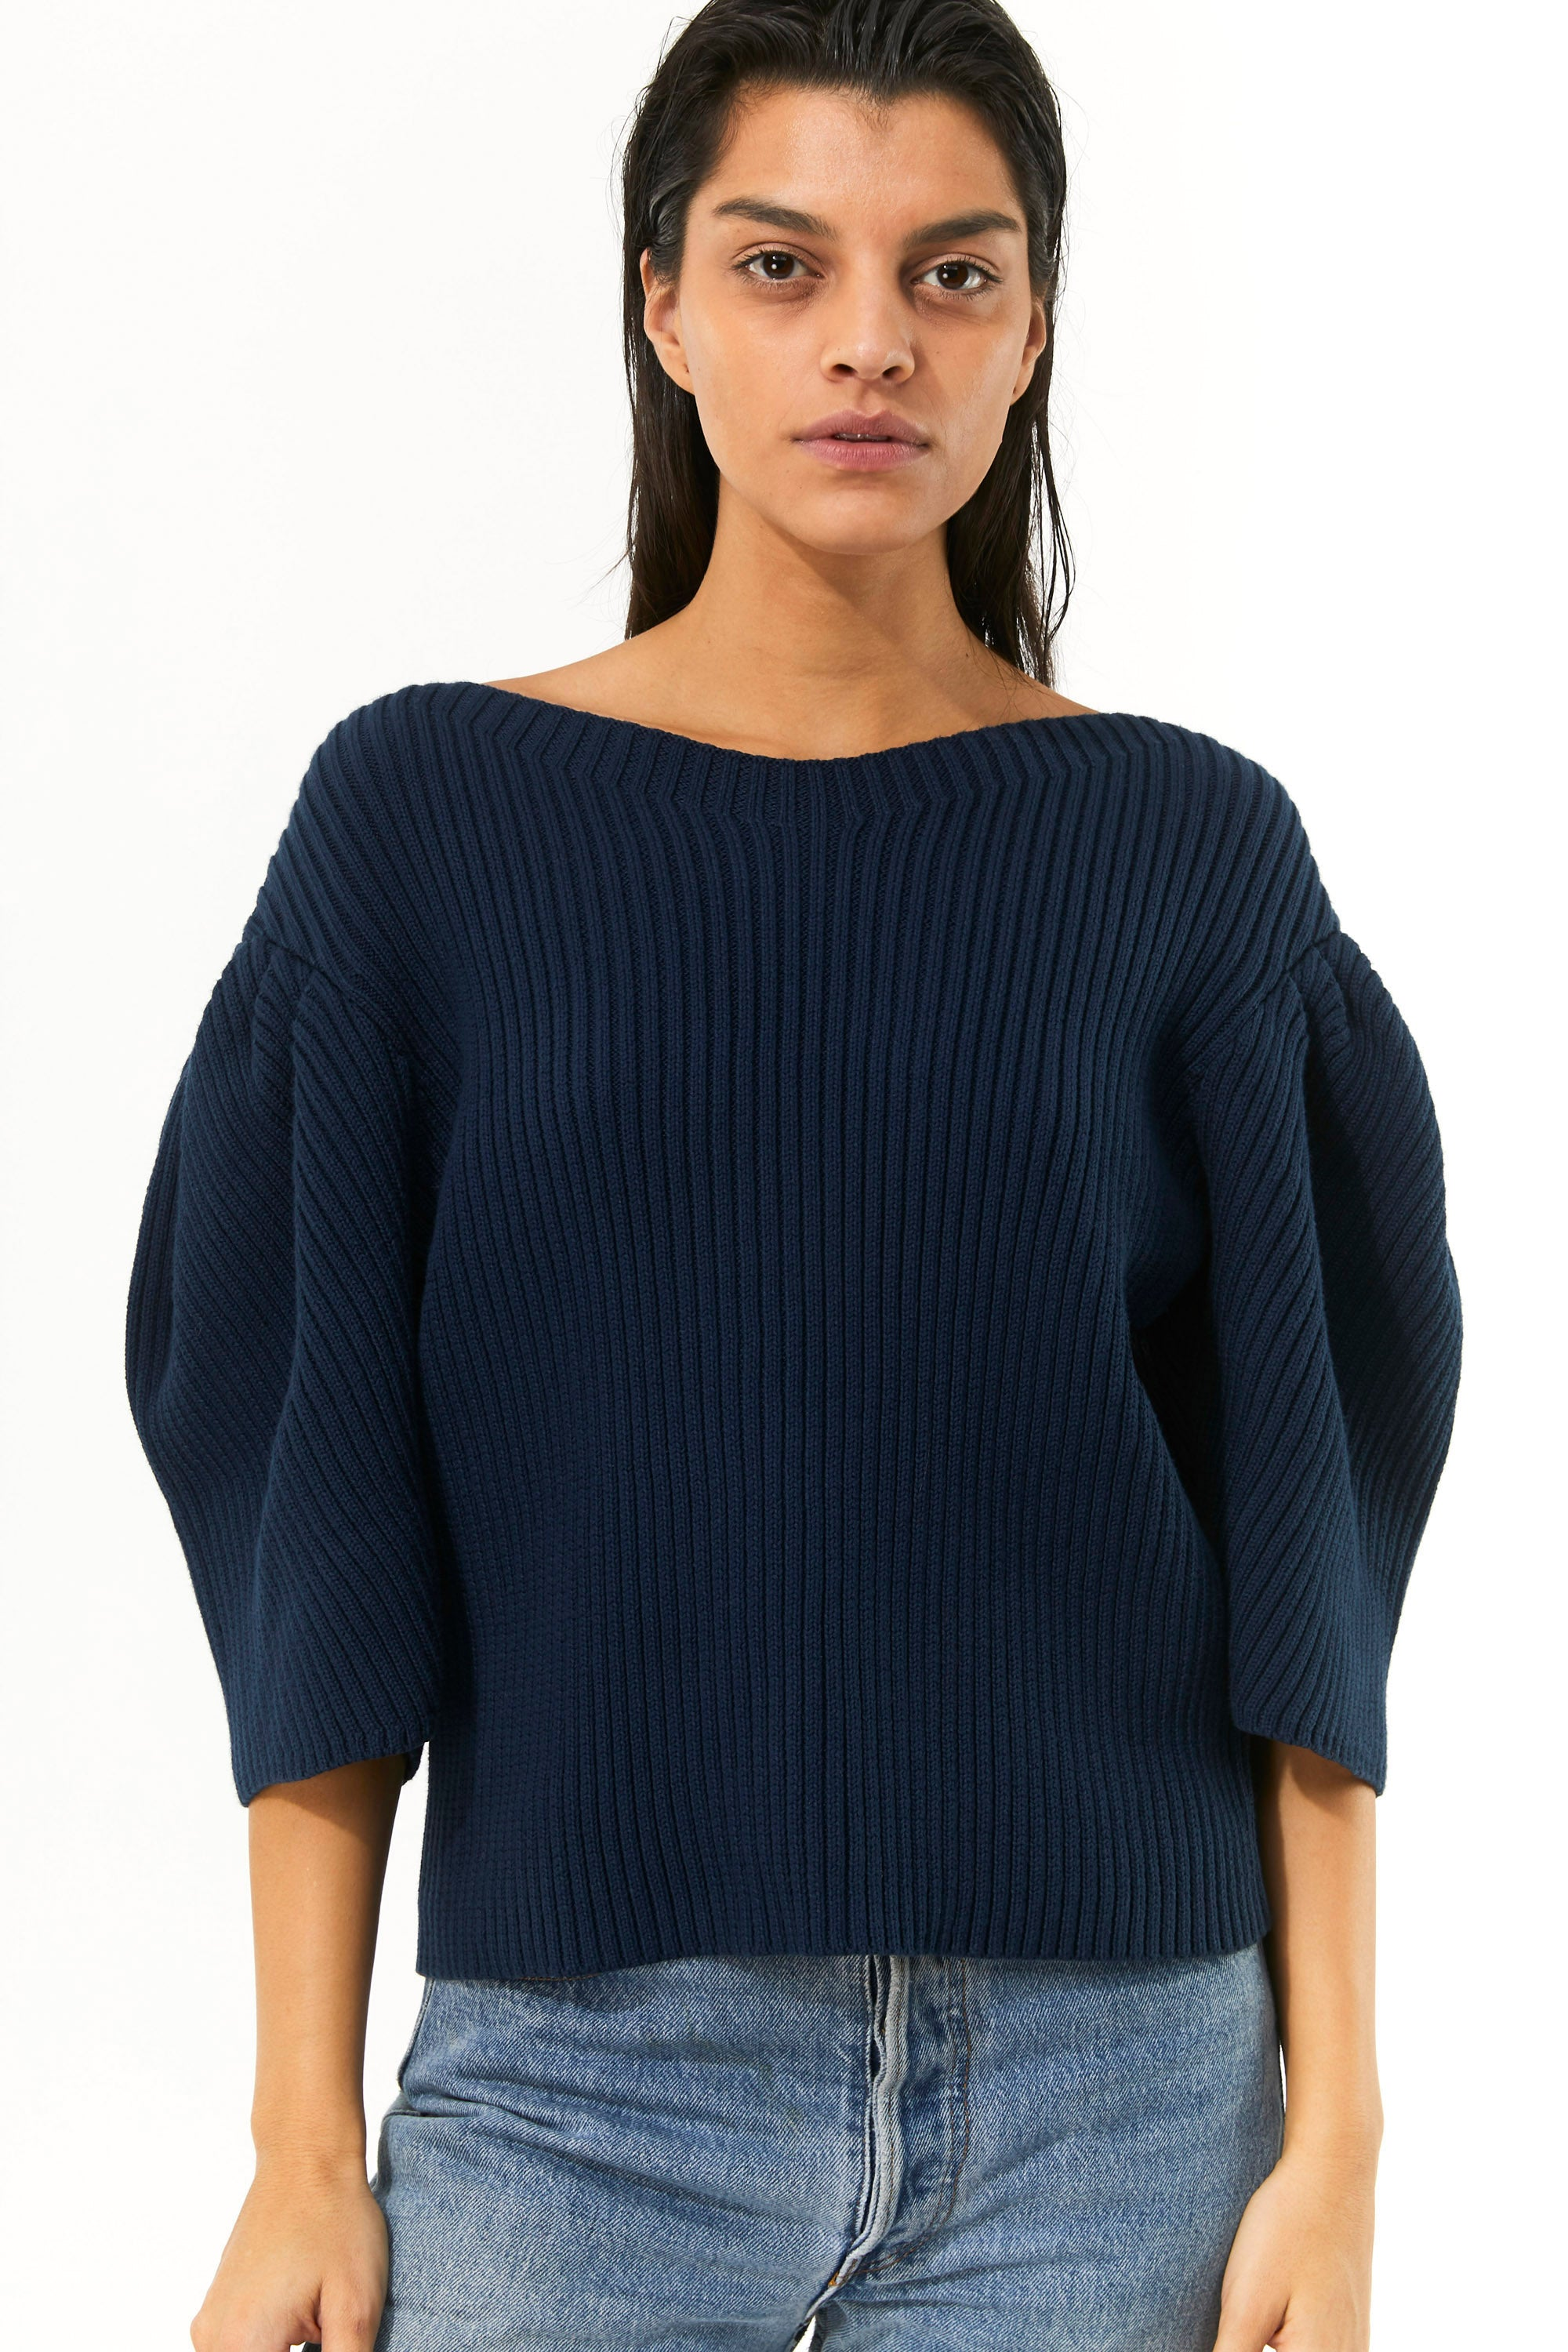 Mara Hoffman Indigo Inga Sweater in organic cotton (front detail)